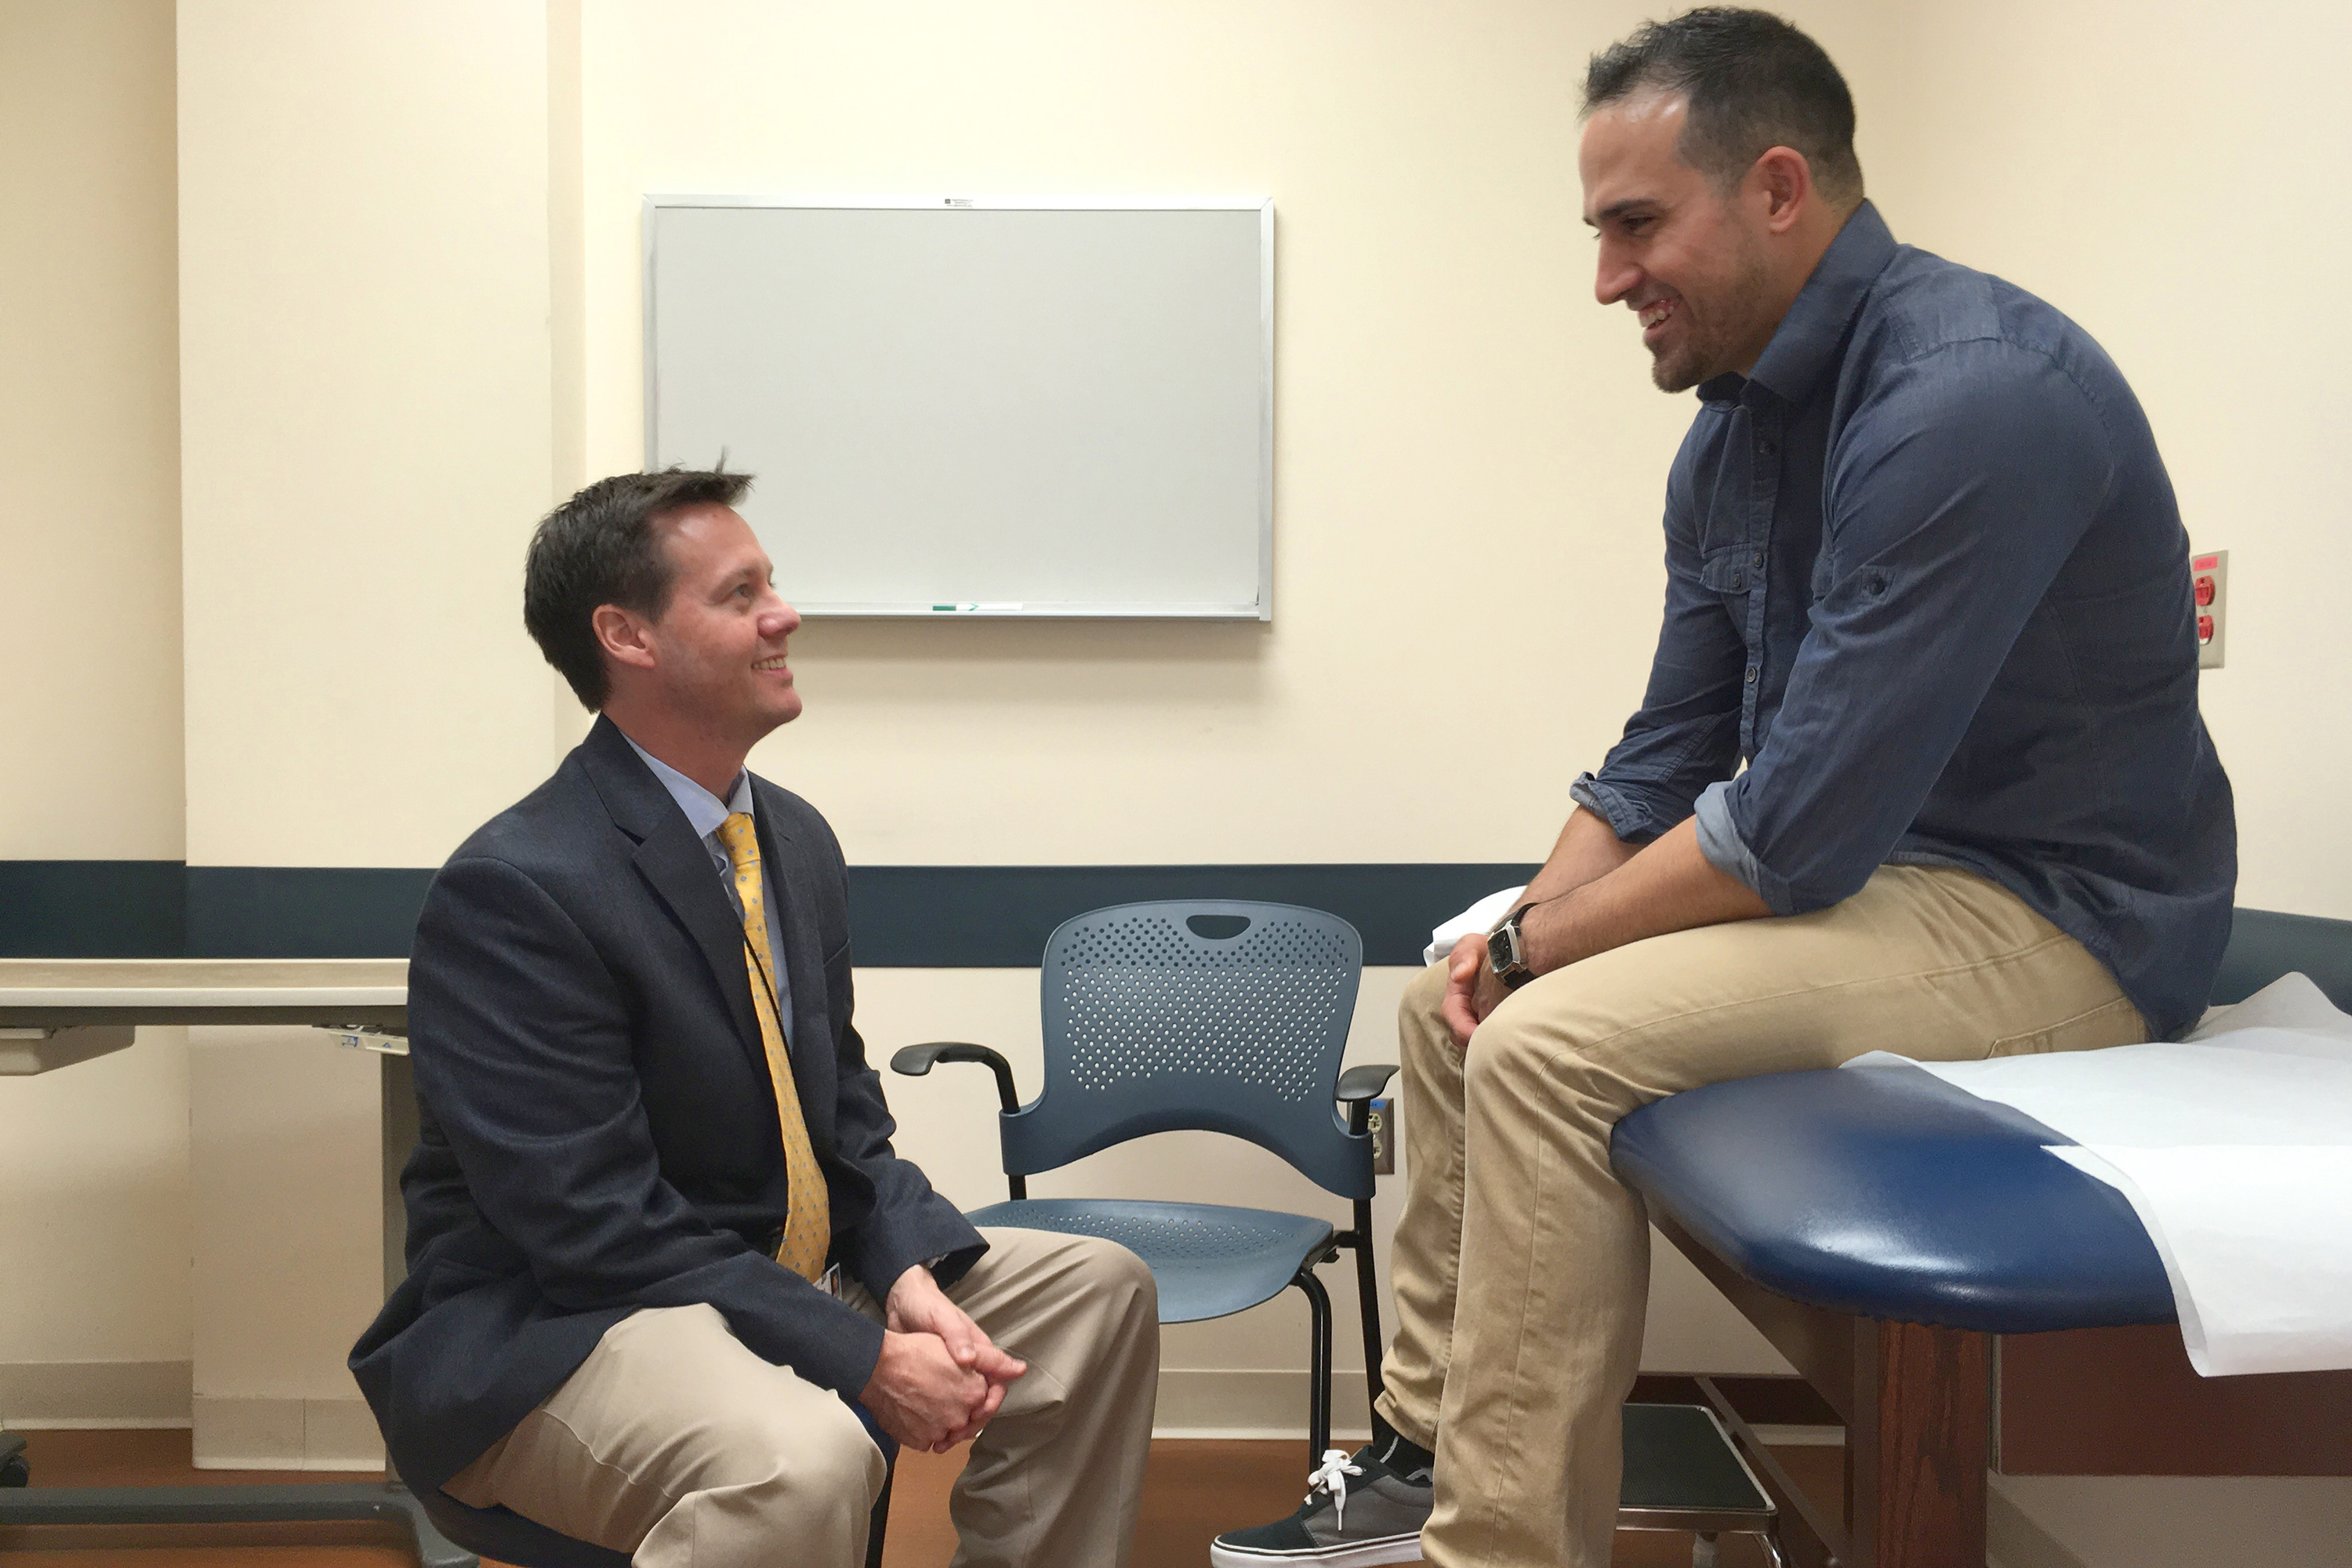 Sports medicine expert Dr. Cory Edgar speaks with Anthony Giansanti of Montville, Conn., at a follow-up appointment at UConn Health. (Lauren Woods/UConn Health Photo)